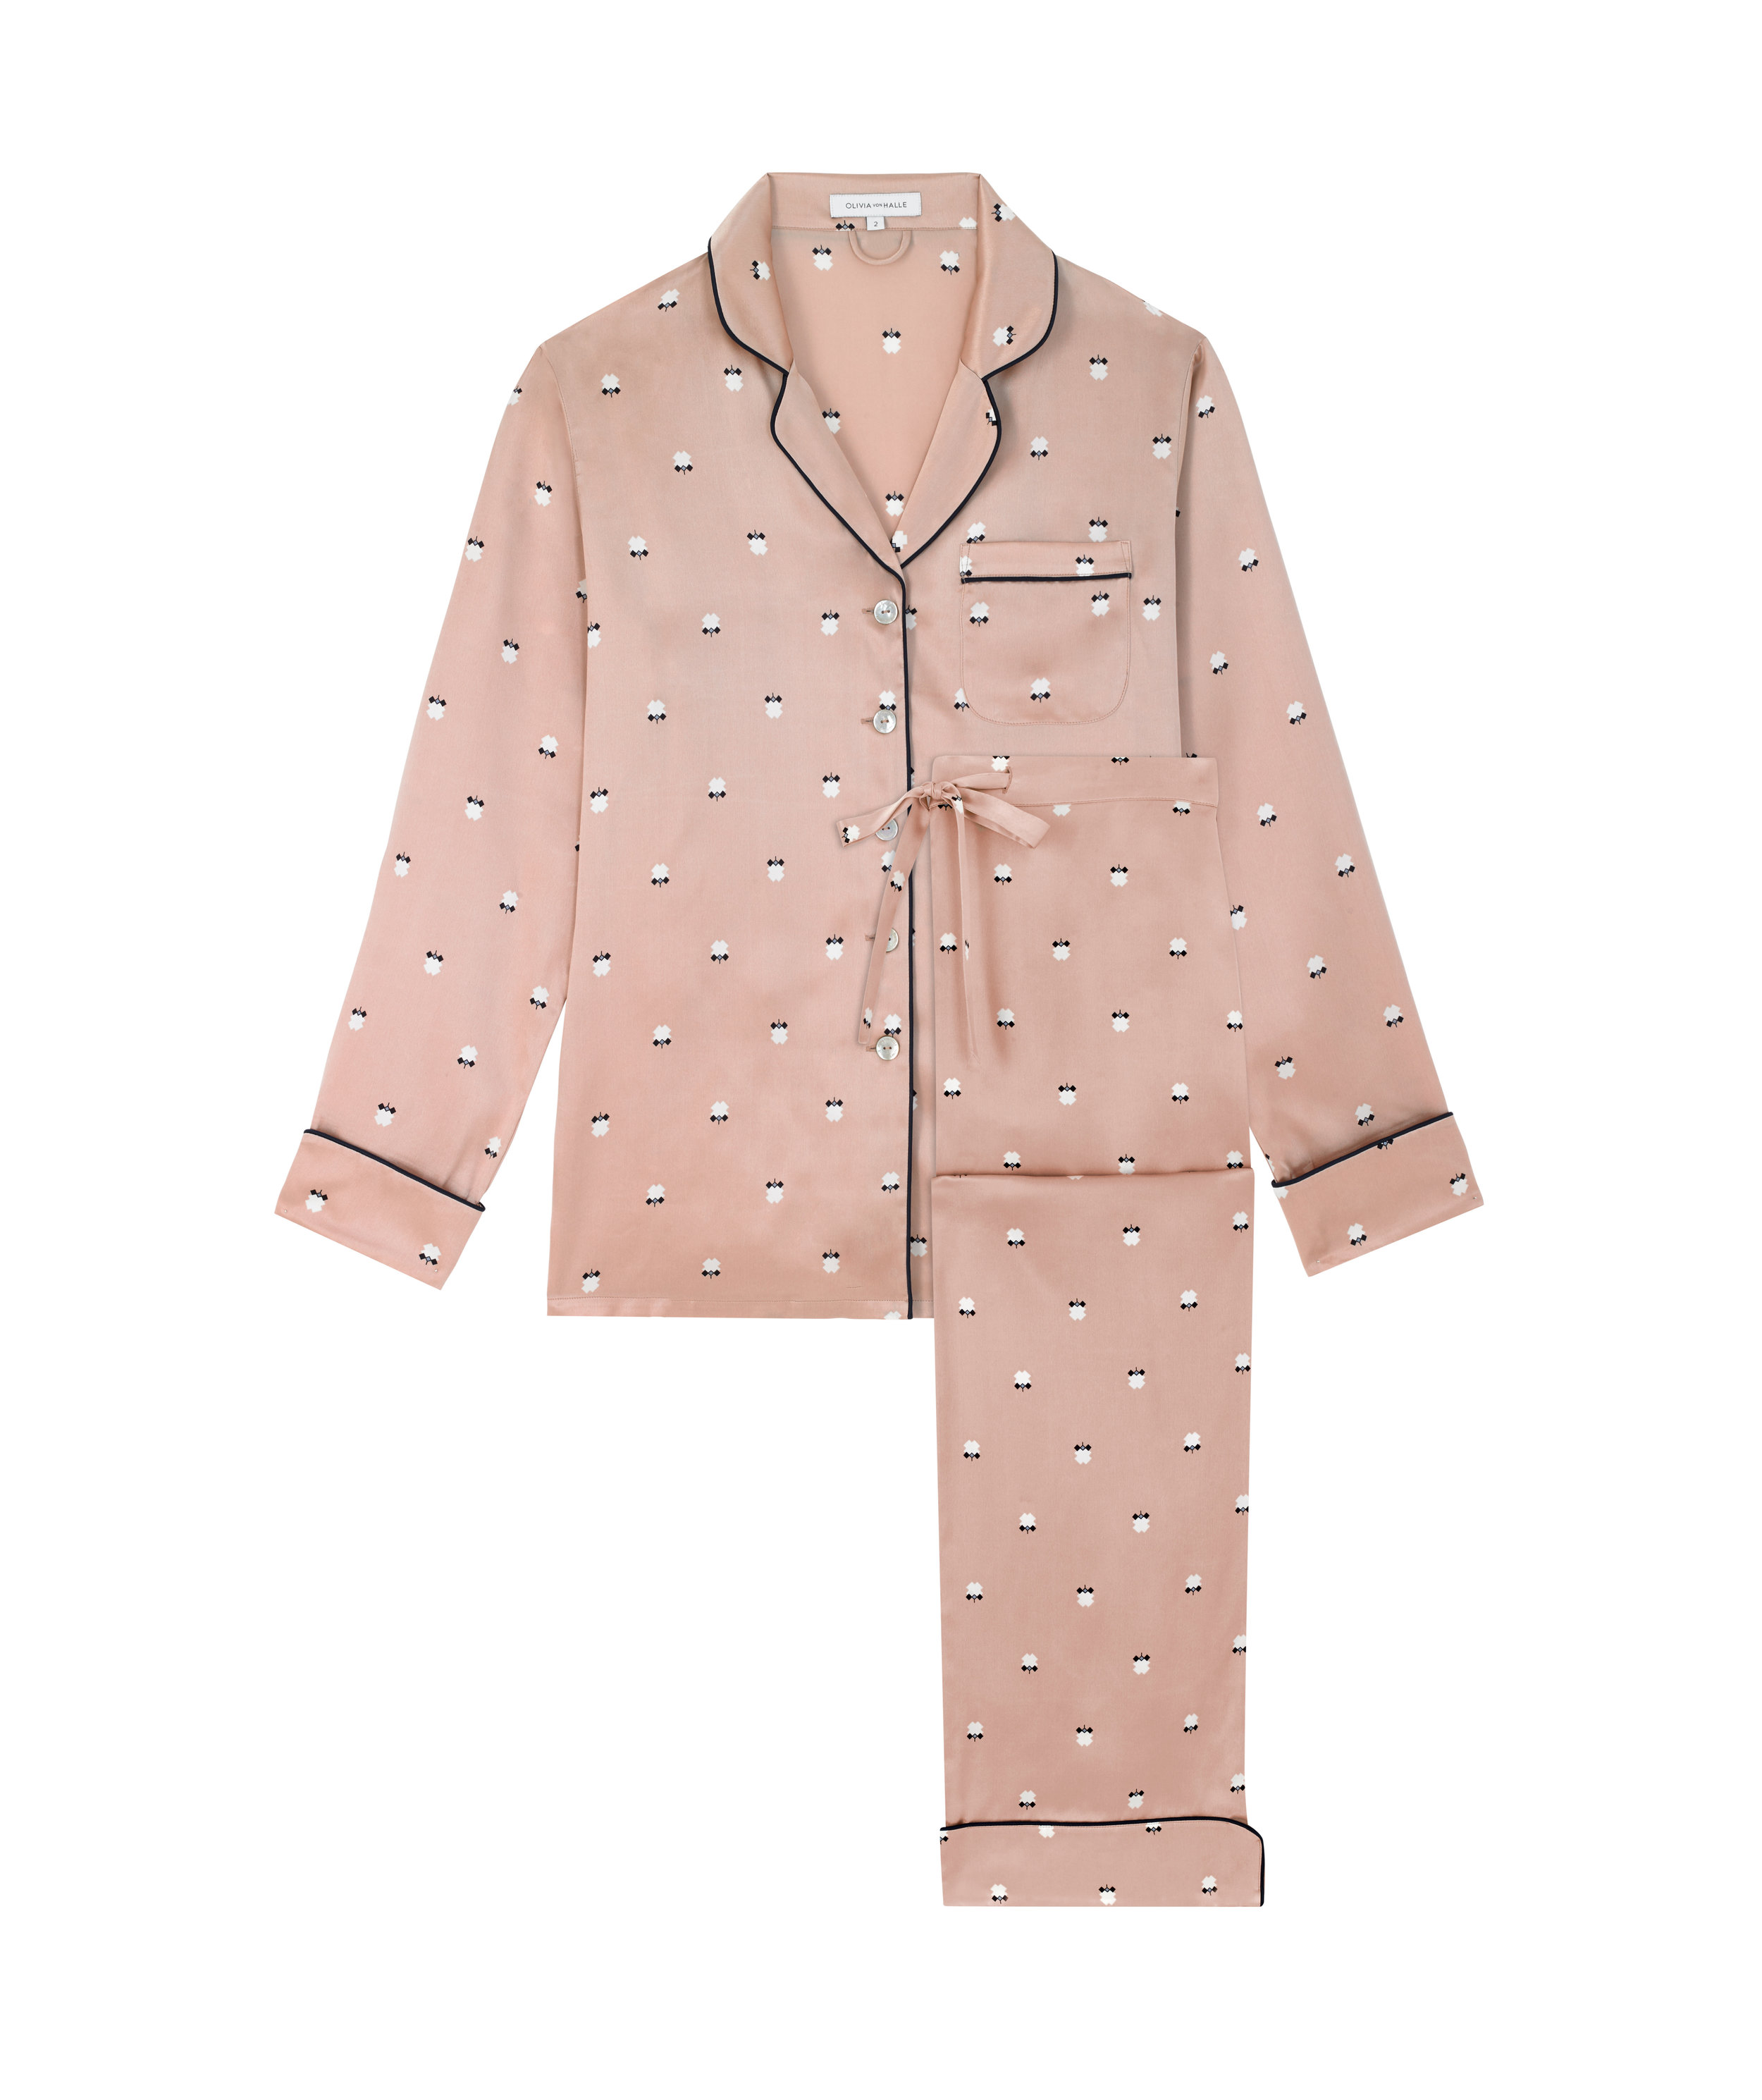 OLIVIA VON HALLE LILA DOLLY SILK PYJAMA, AVAILABLE AT OLIVIA VON HALLE